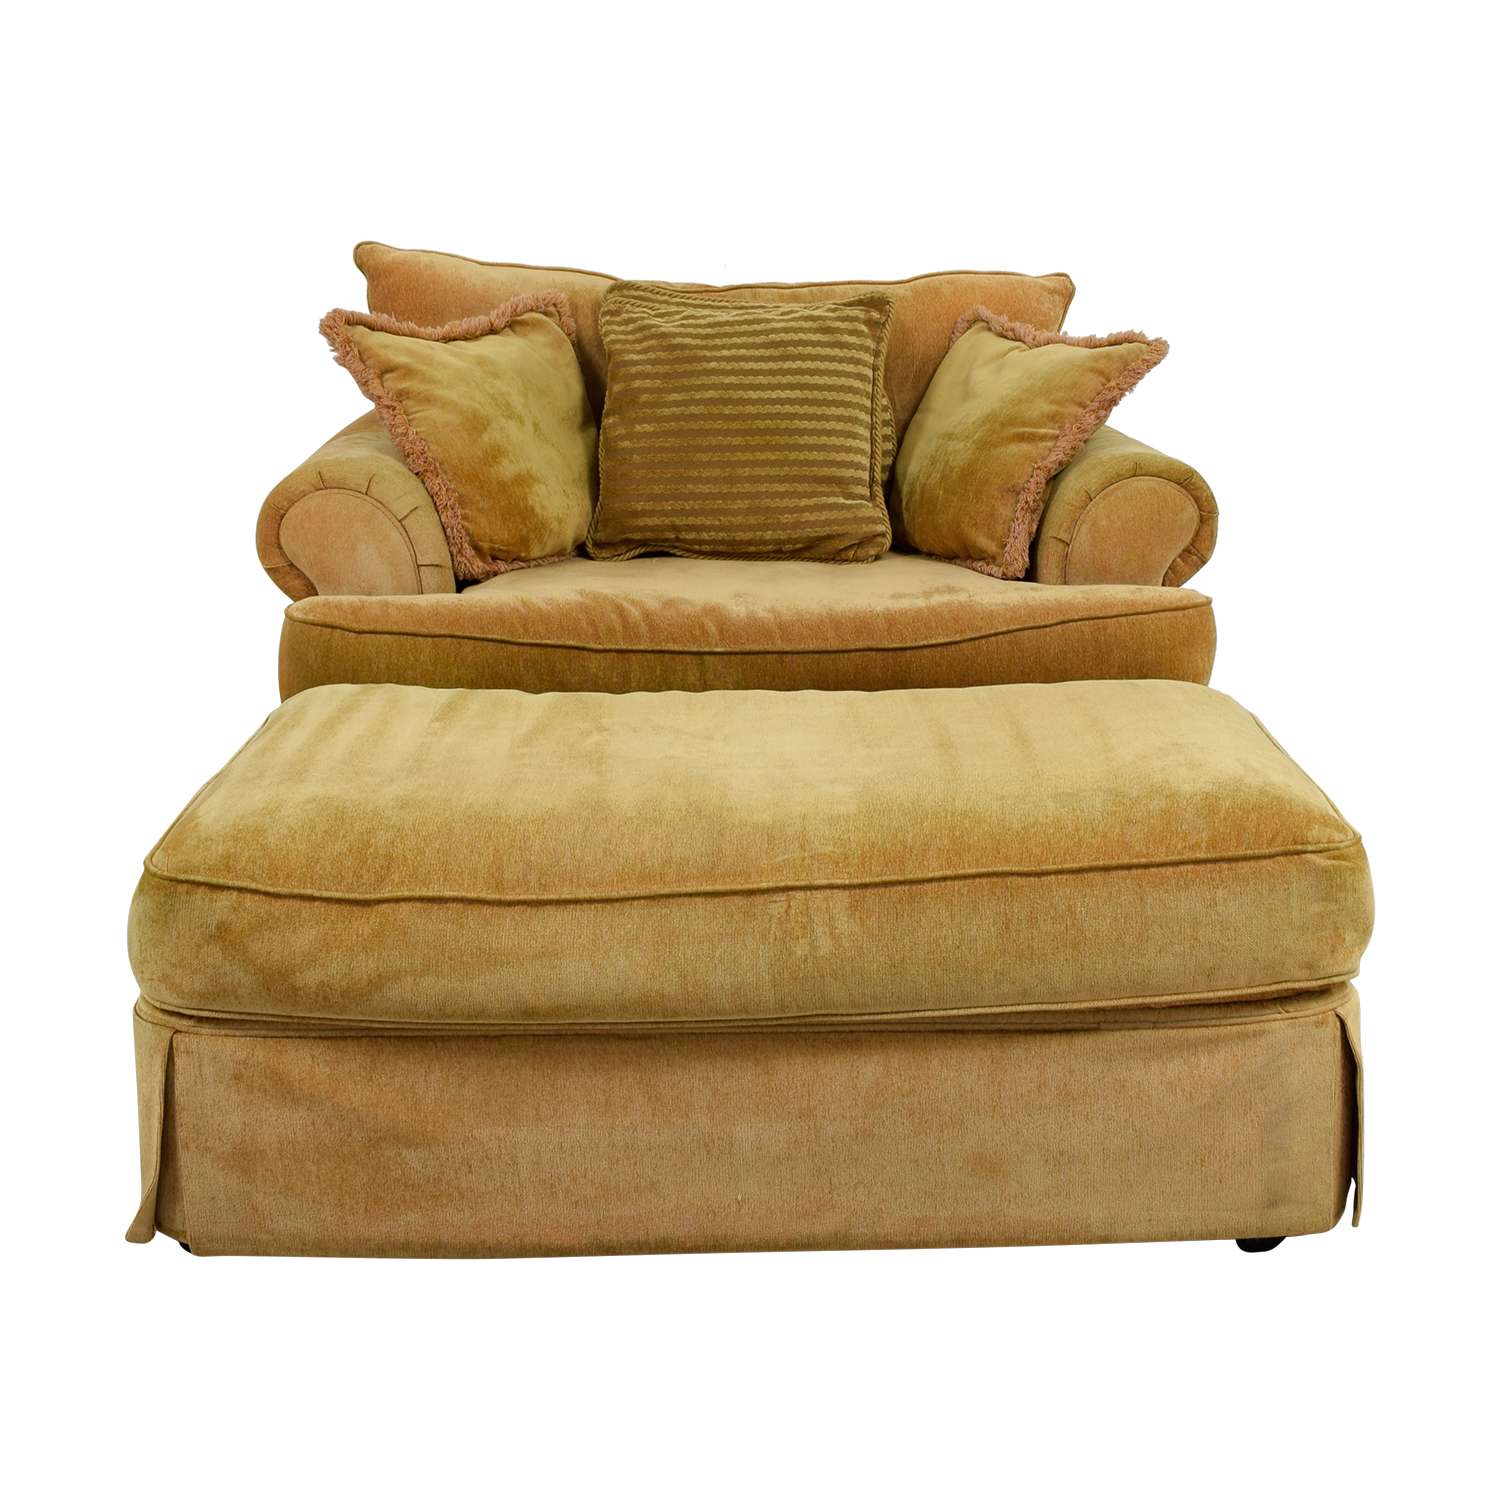 Klaussner Klaussner Yellow Arm Chair and Ottoman on sale